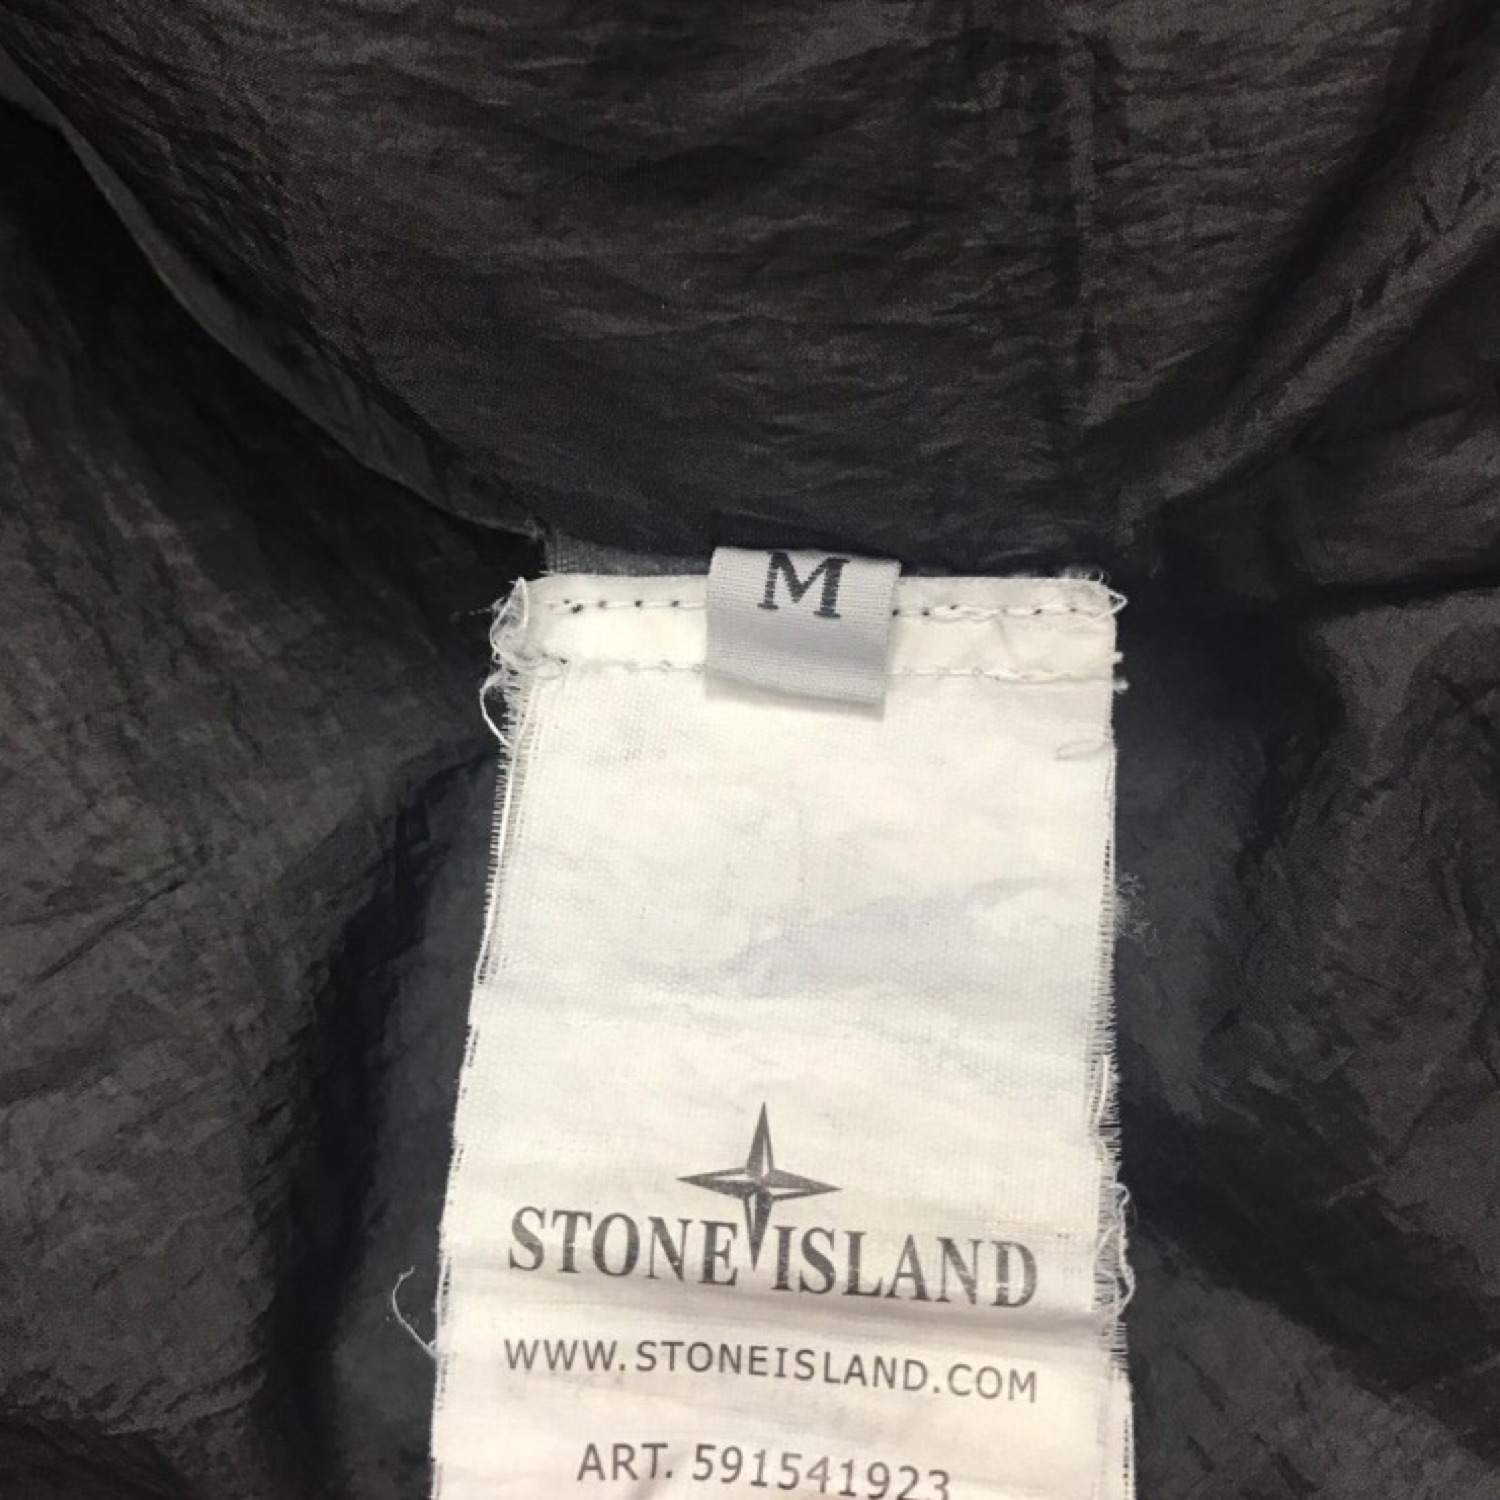 Stone Island AW2013 Garment Dyed Crinkle Reps NY Down Jacket